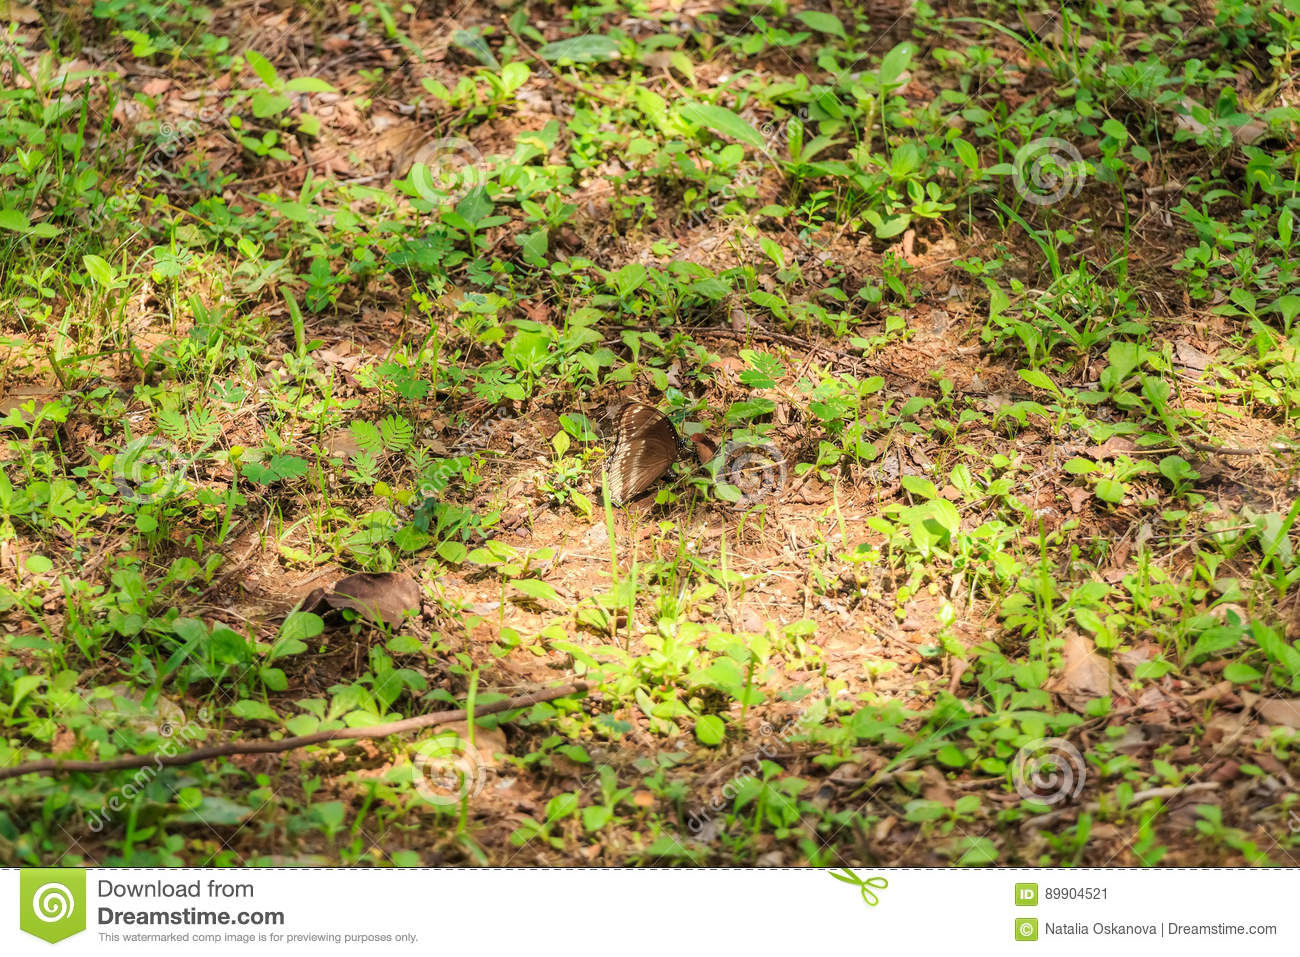 Tropical brown butterfly hides in grass